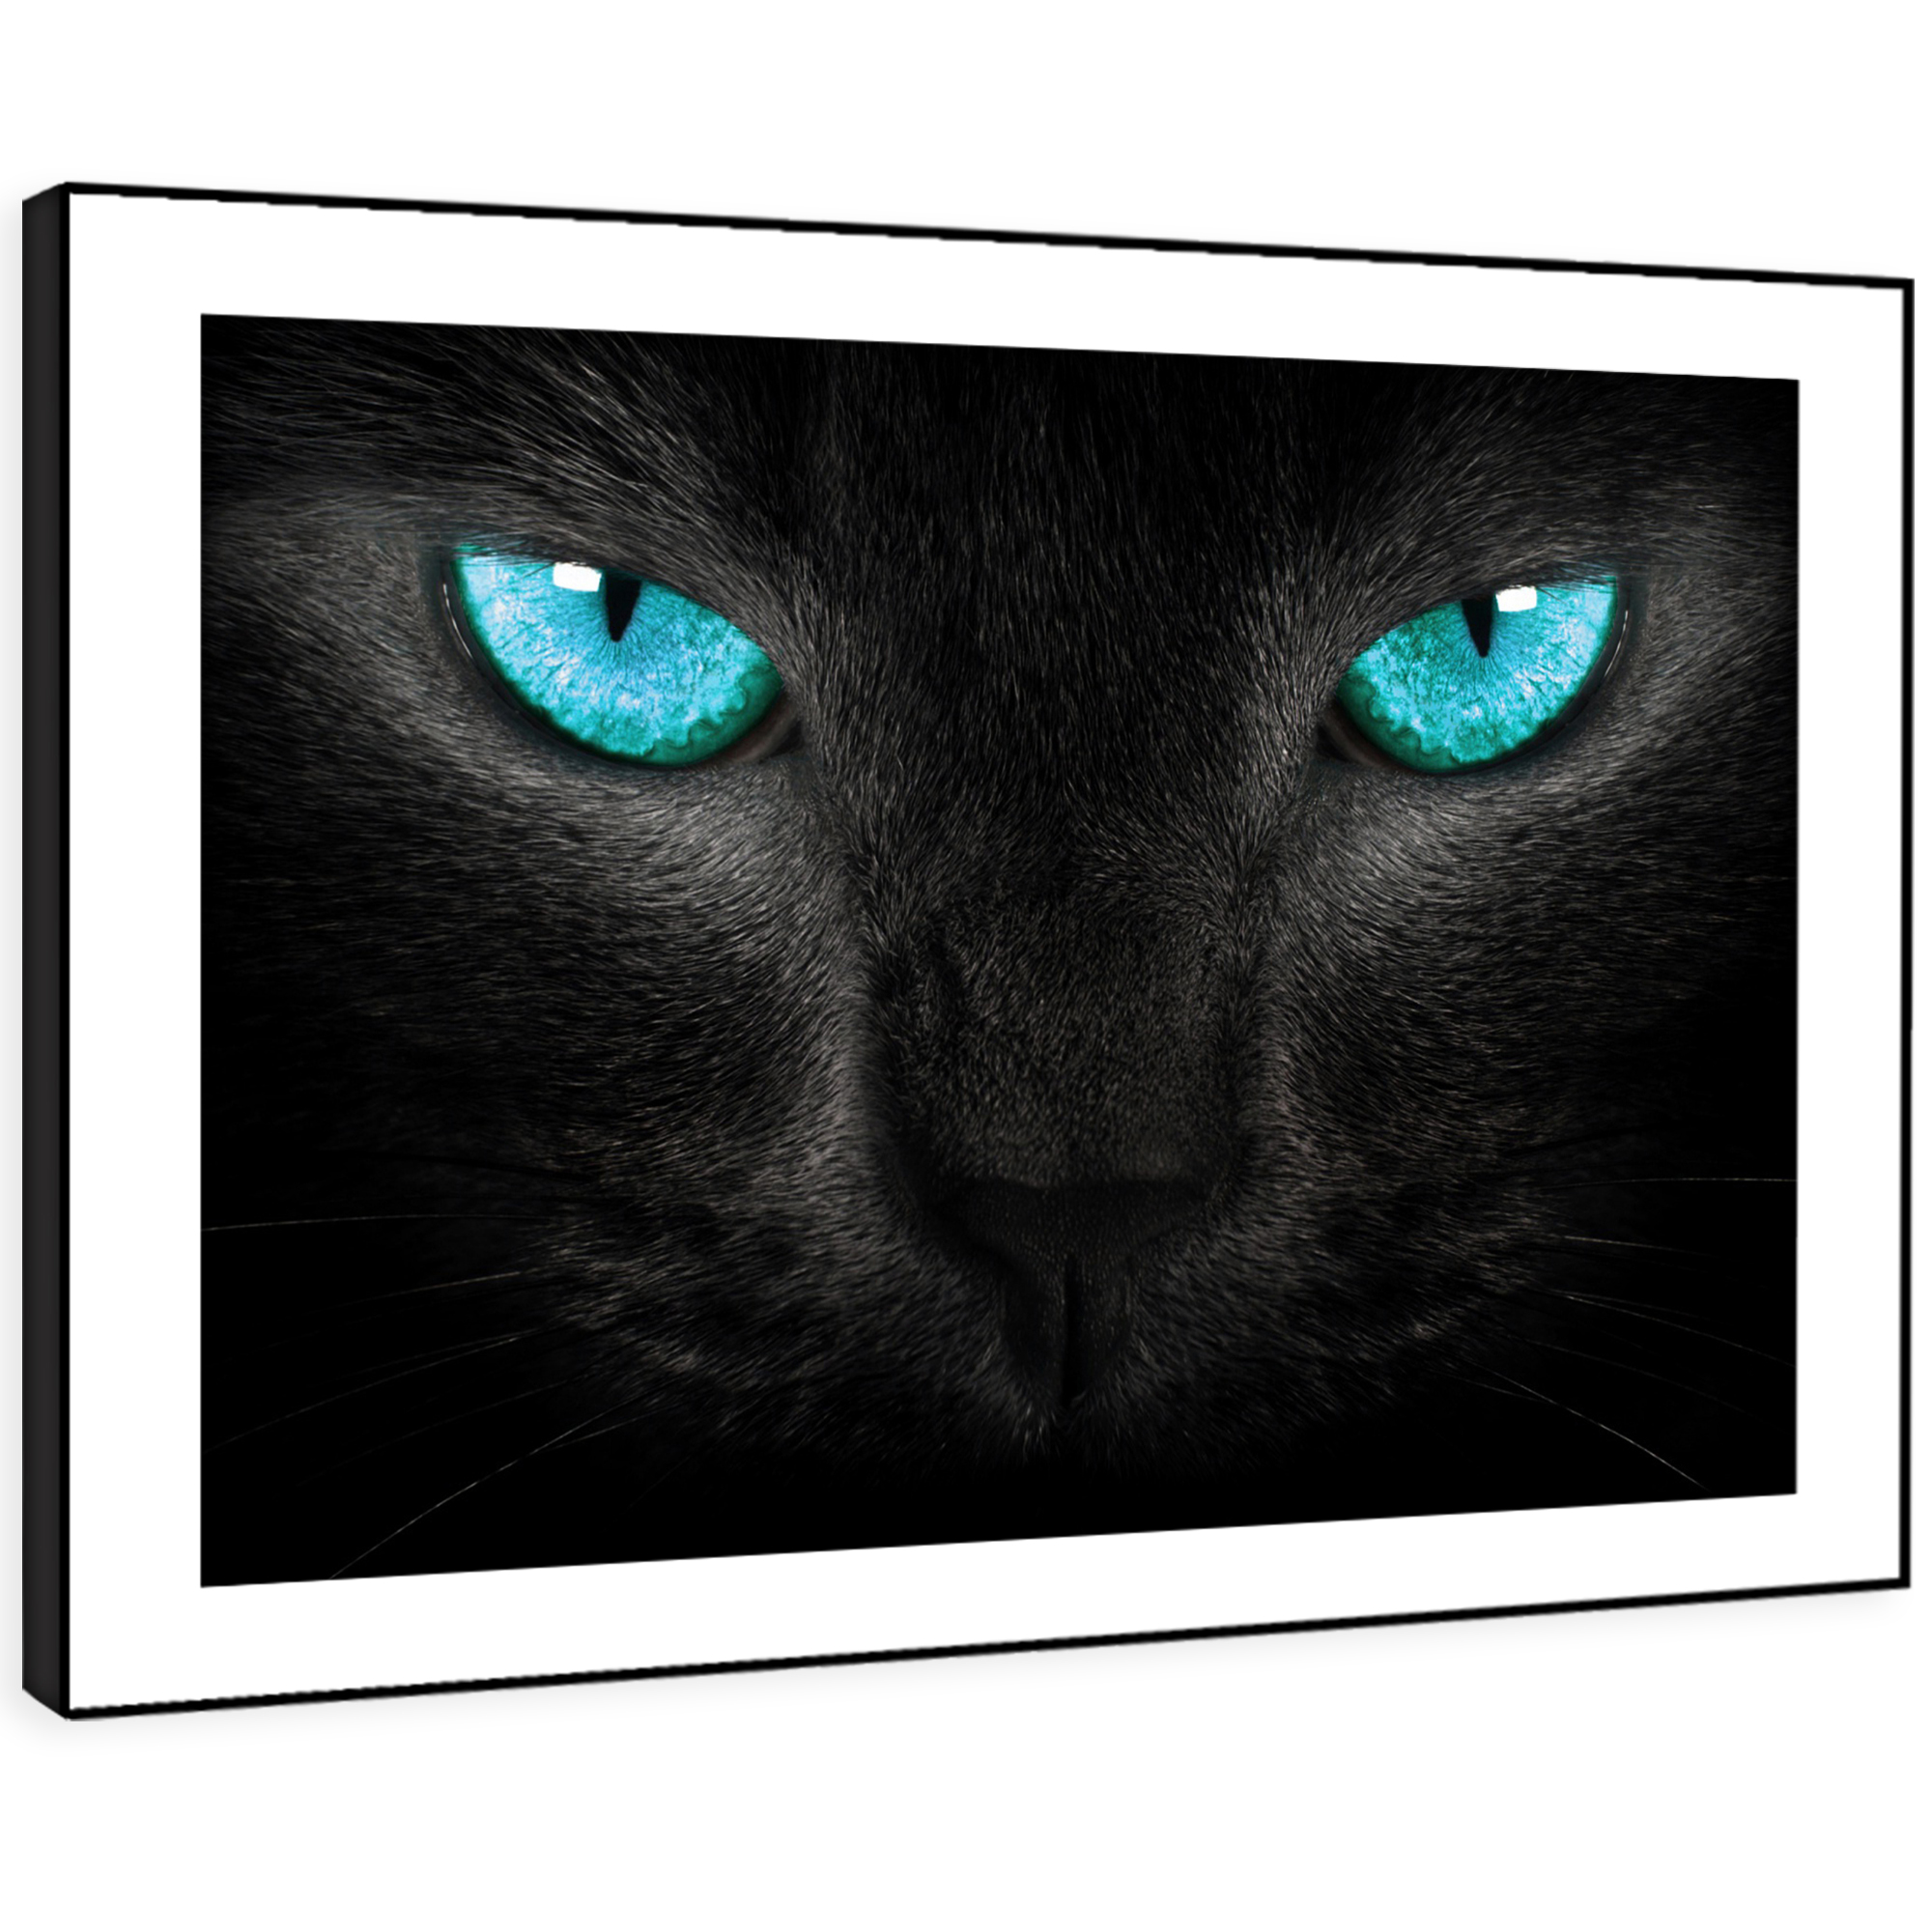 Details about a159 black panther blue eyes funky animal framed wall art large picture prints